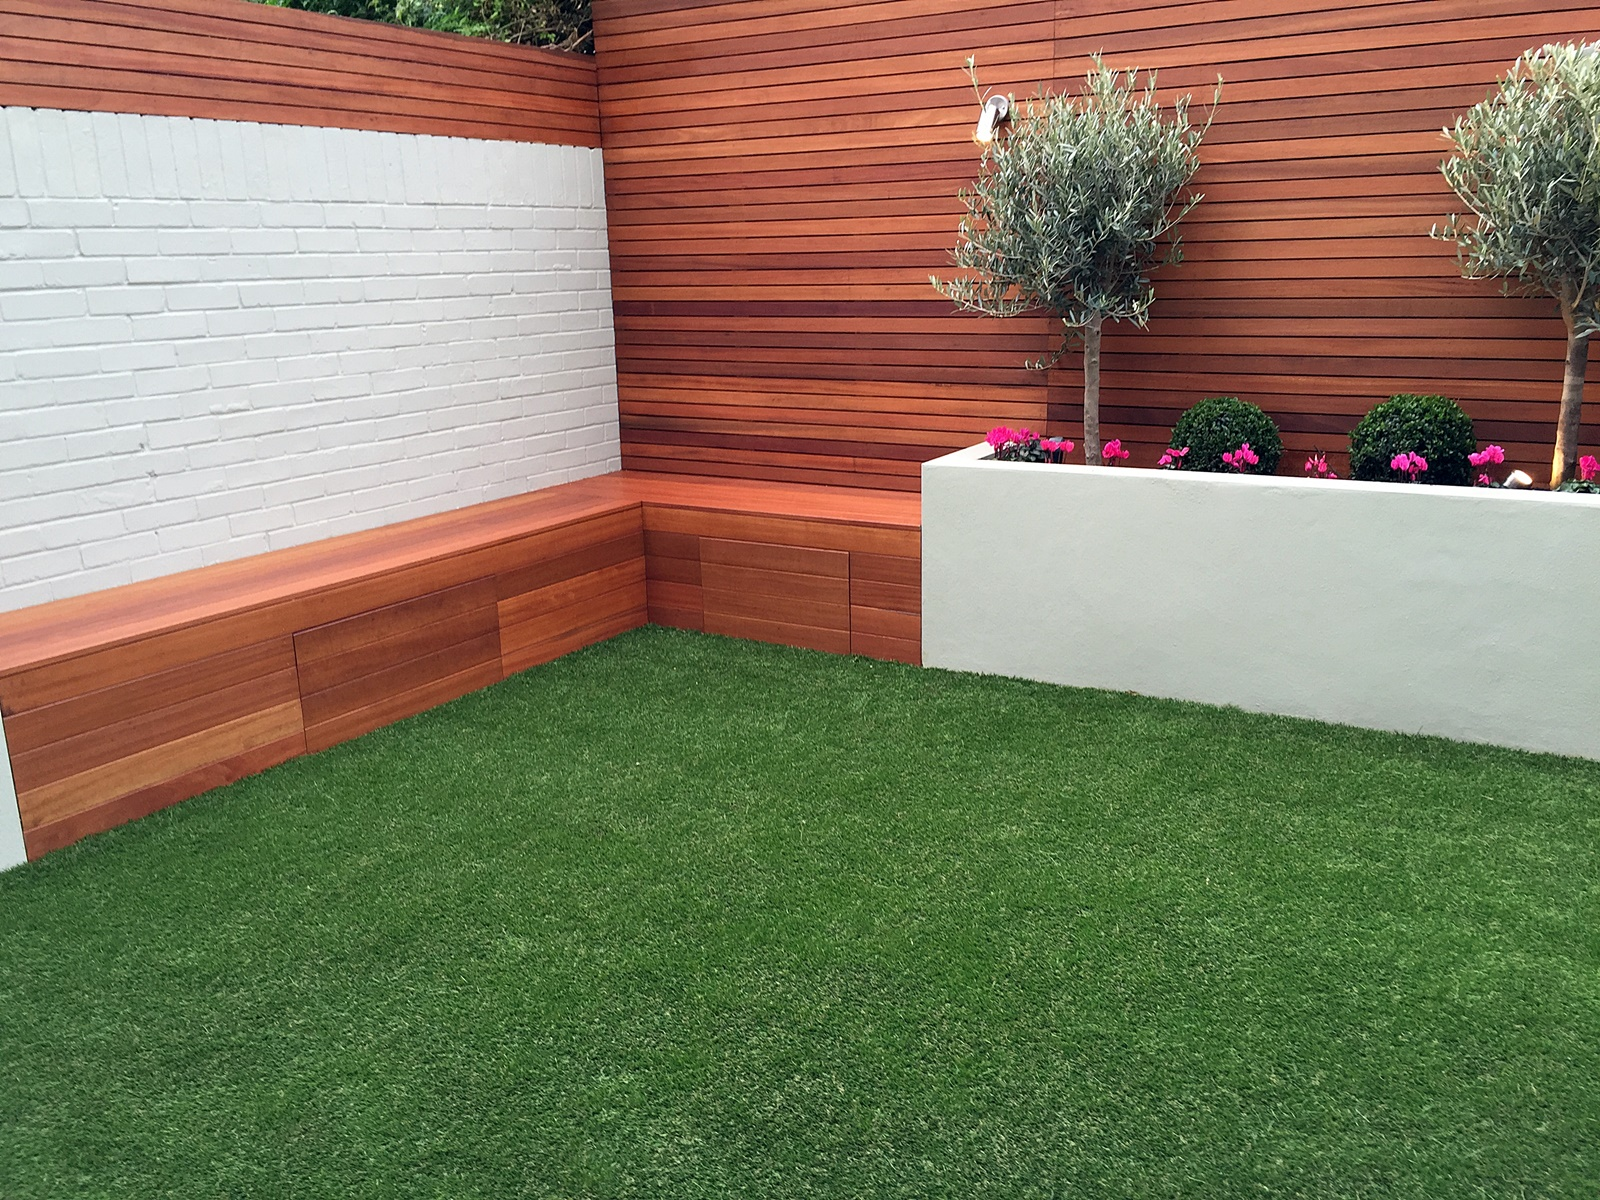 Simple modern court yard garden designer battersea fulham for Small simple garden design ideas